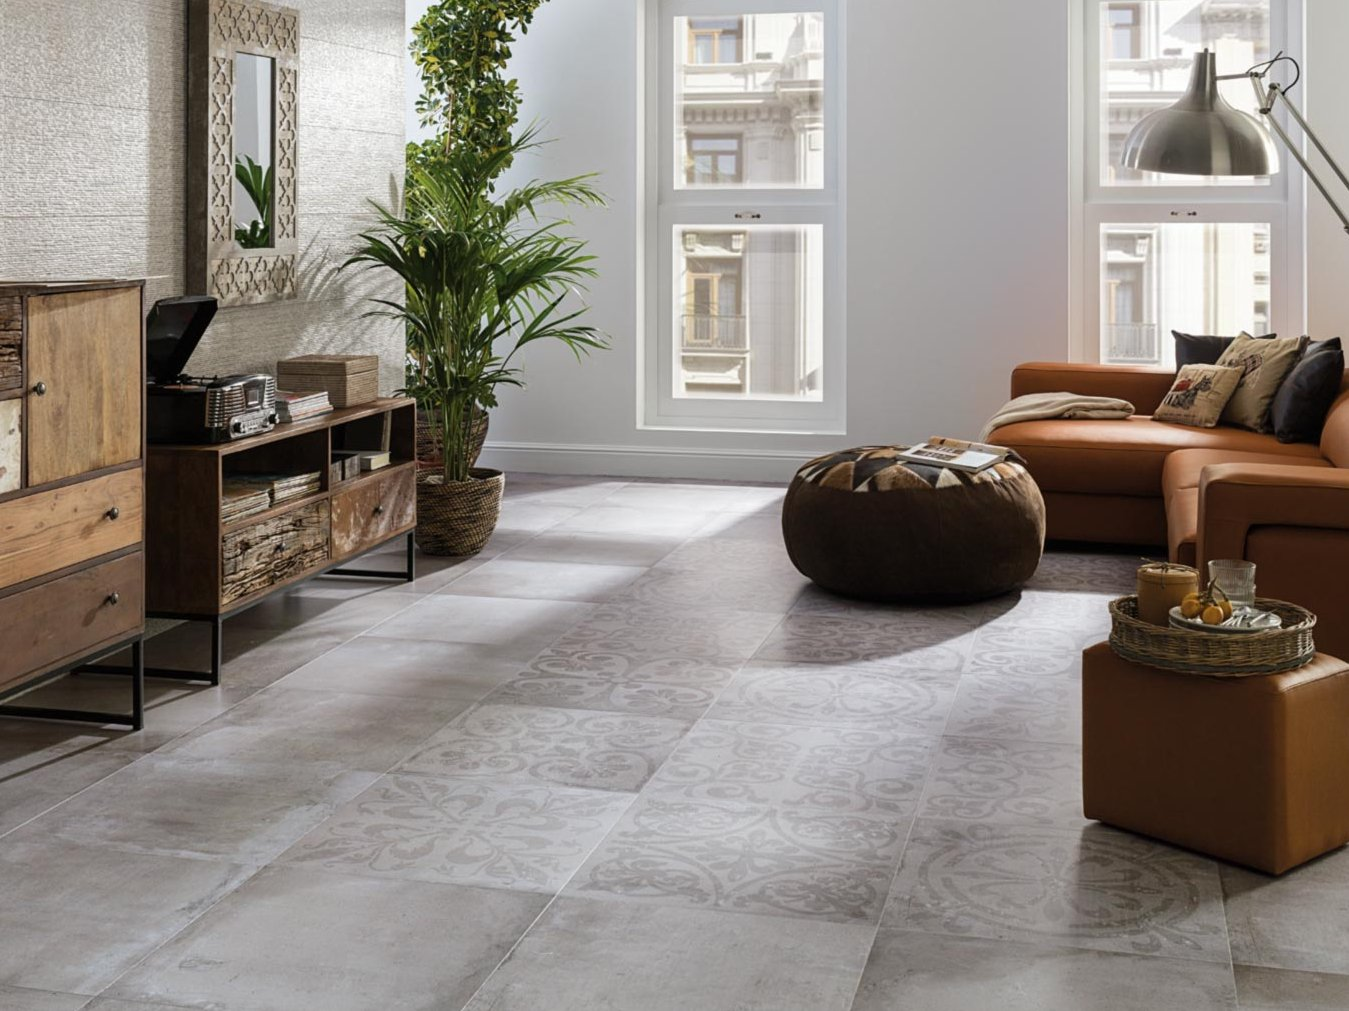 Porcelanosa Floor Tiles Wallfloor Tiles Stonker®  Tribeca Stonker® Collection.